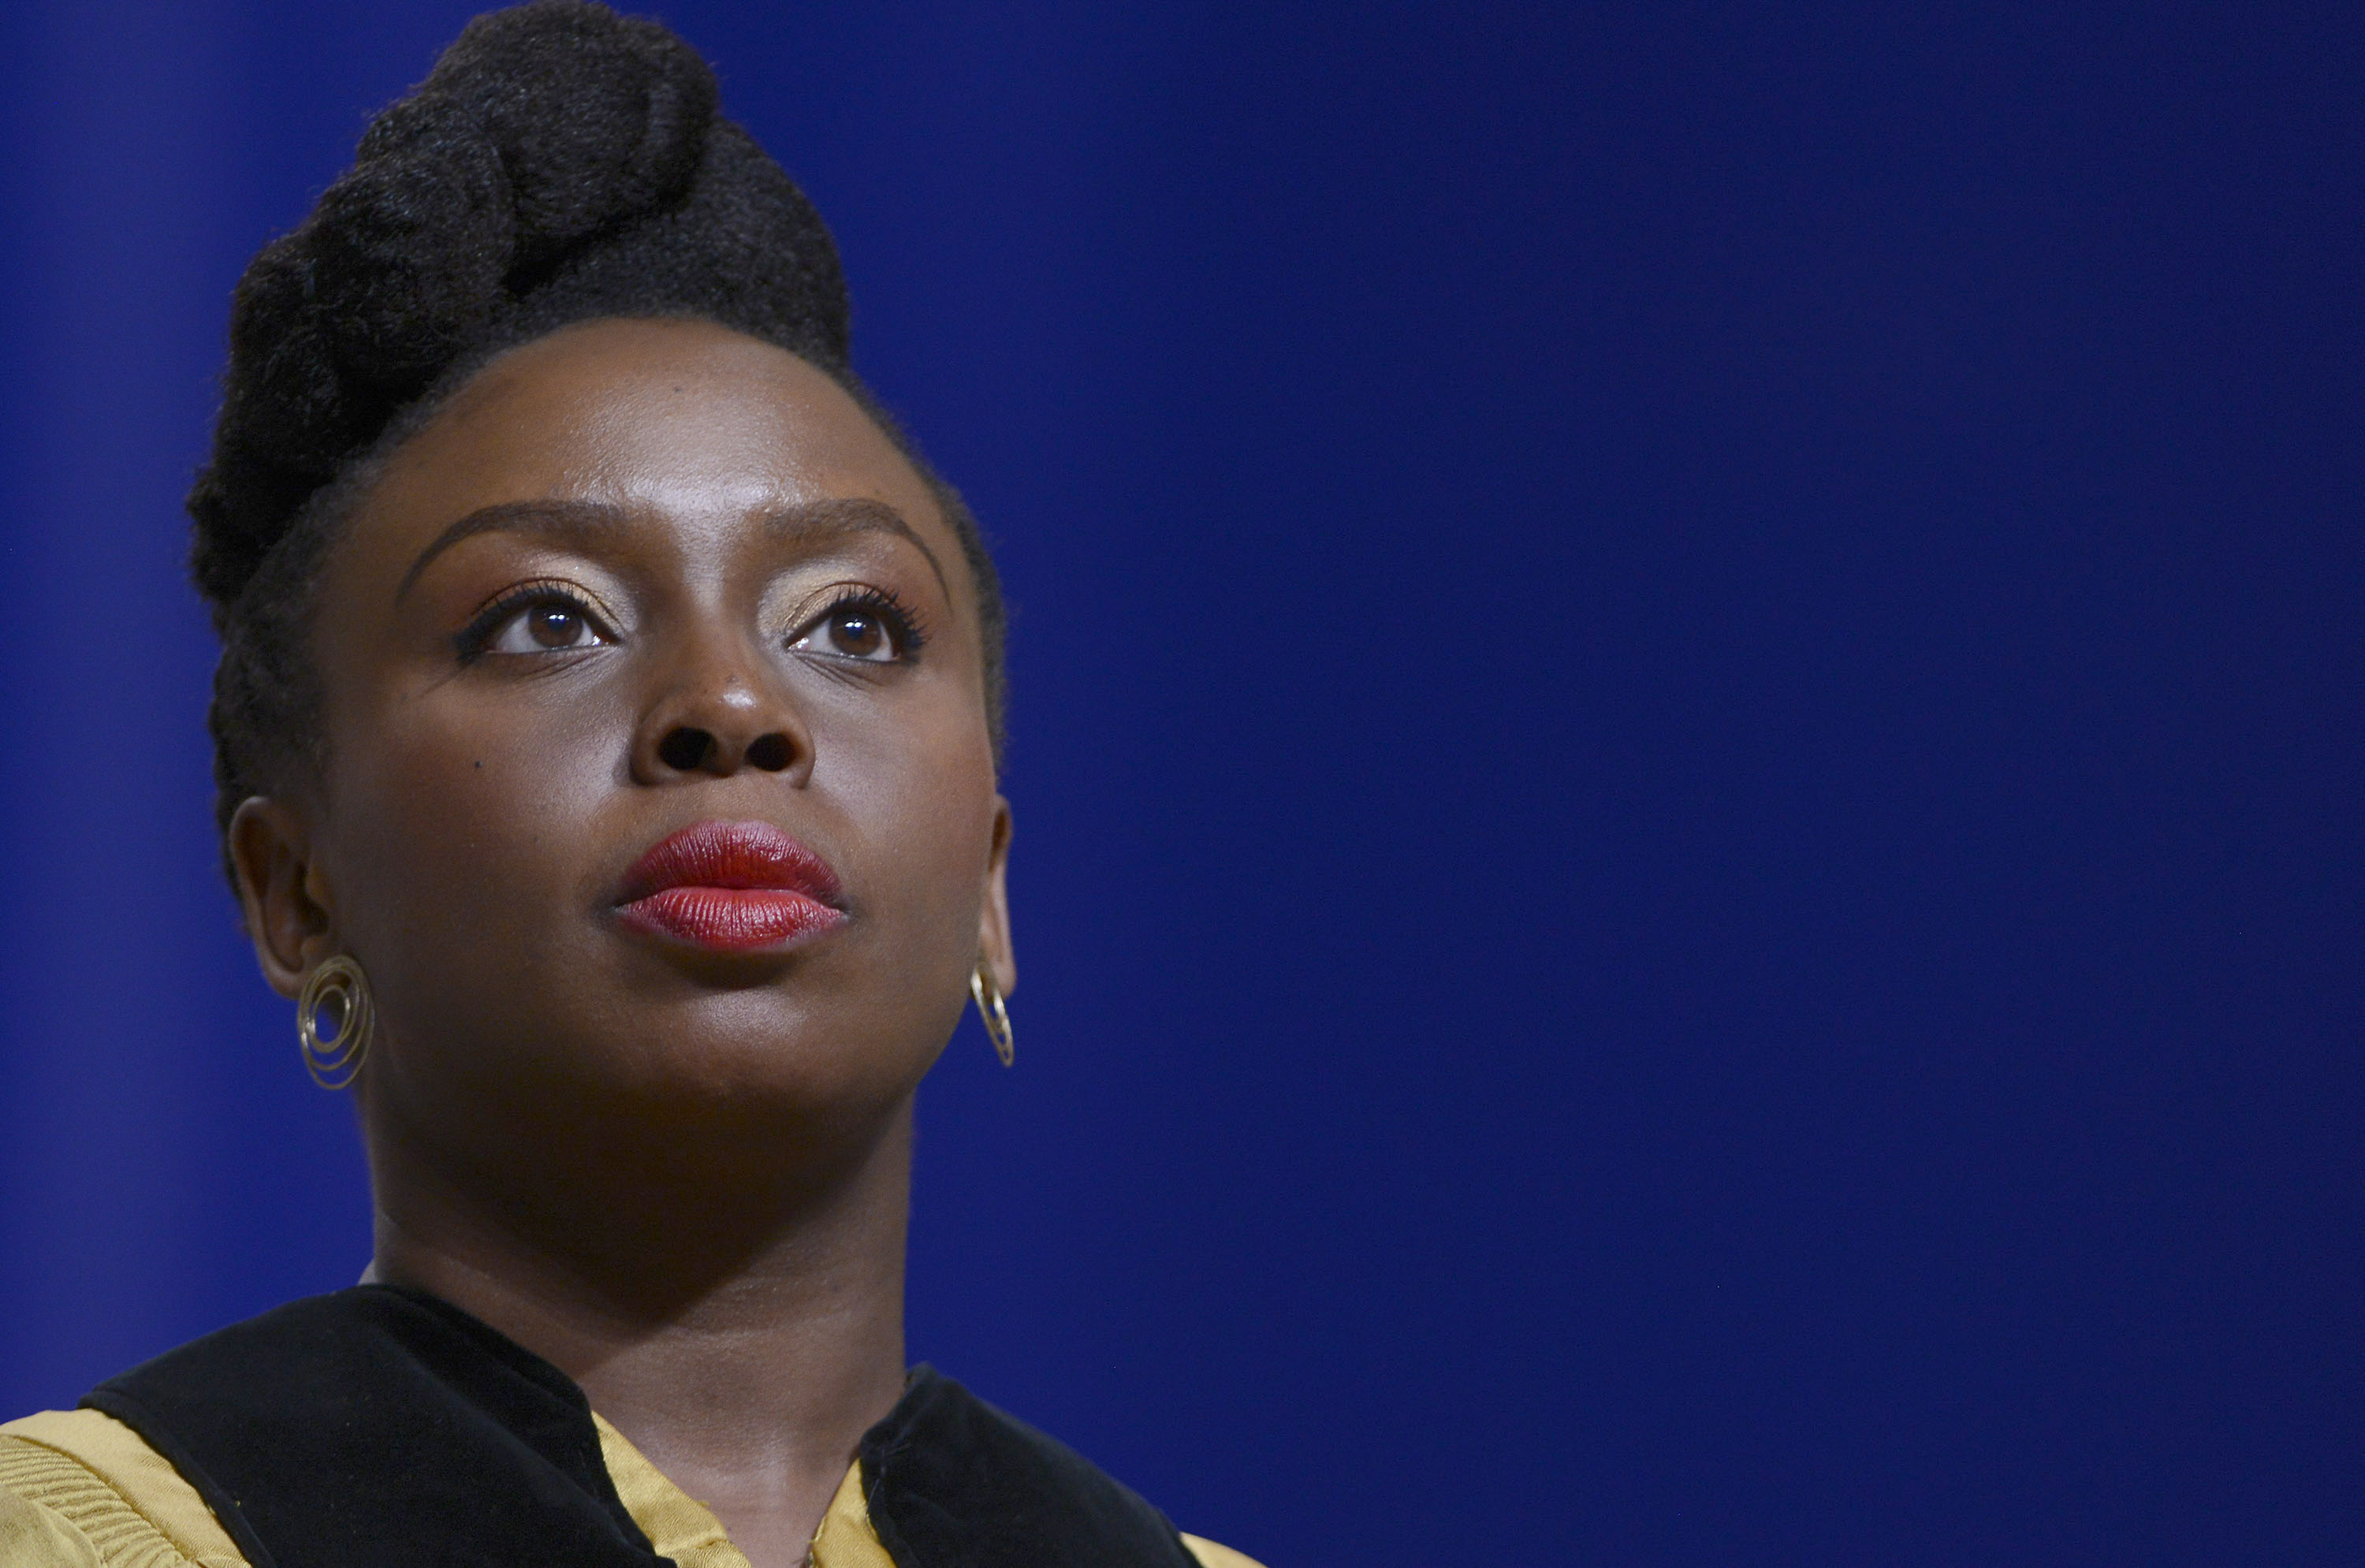 The controversy over Chimamanda Ngozi Adichie and trans women, explained